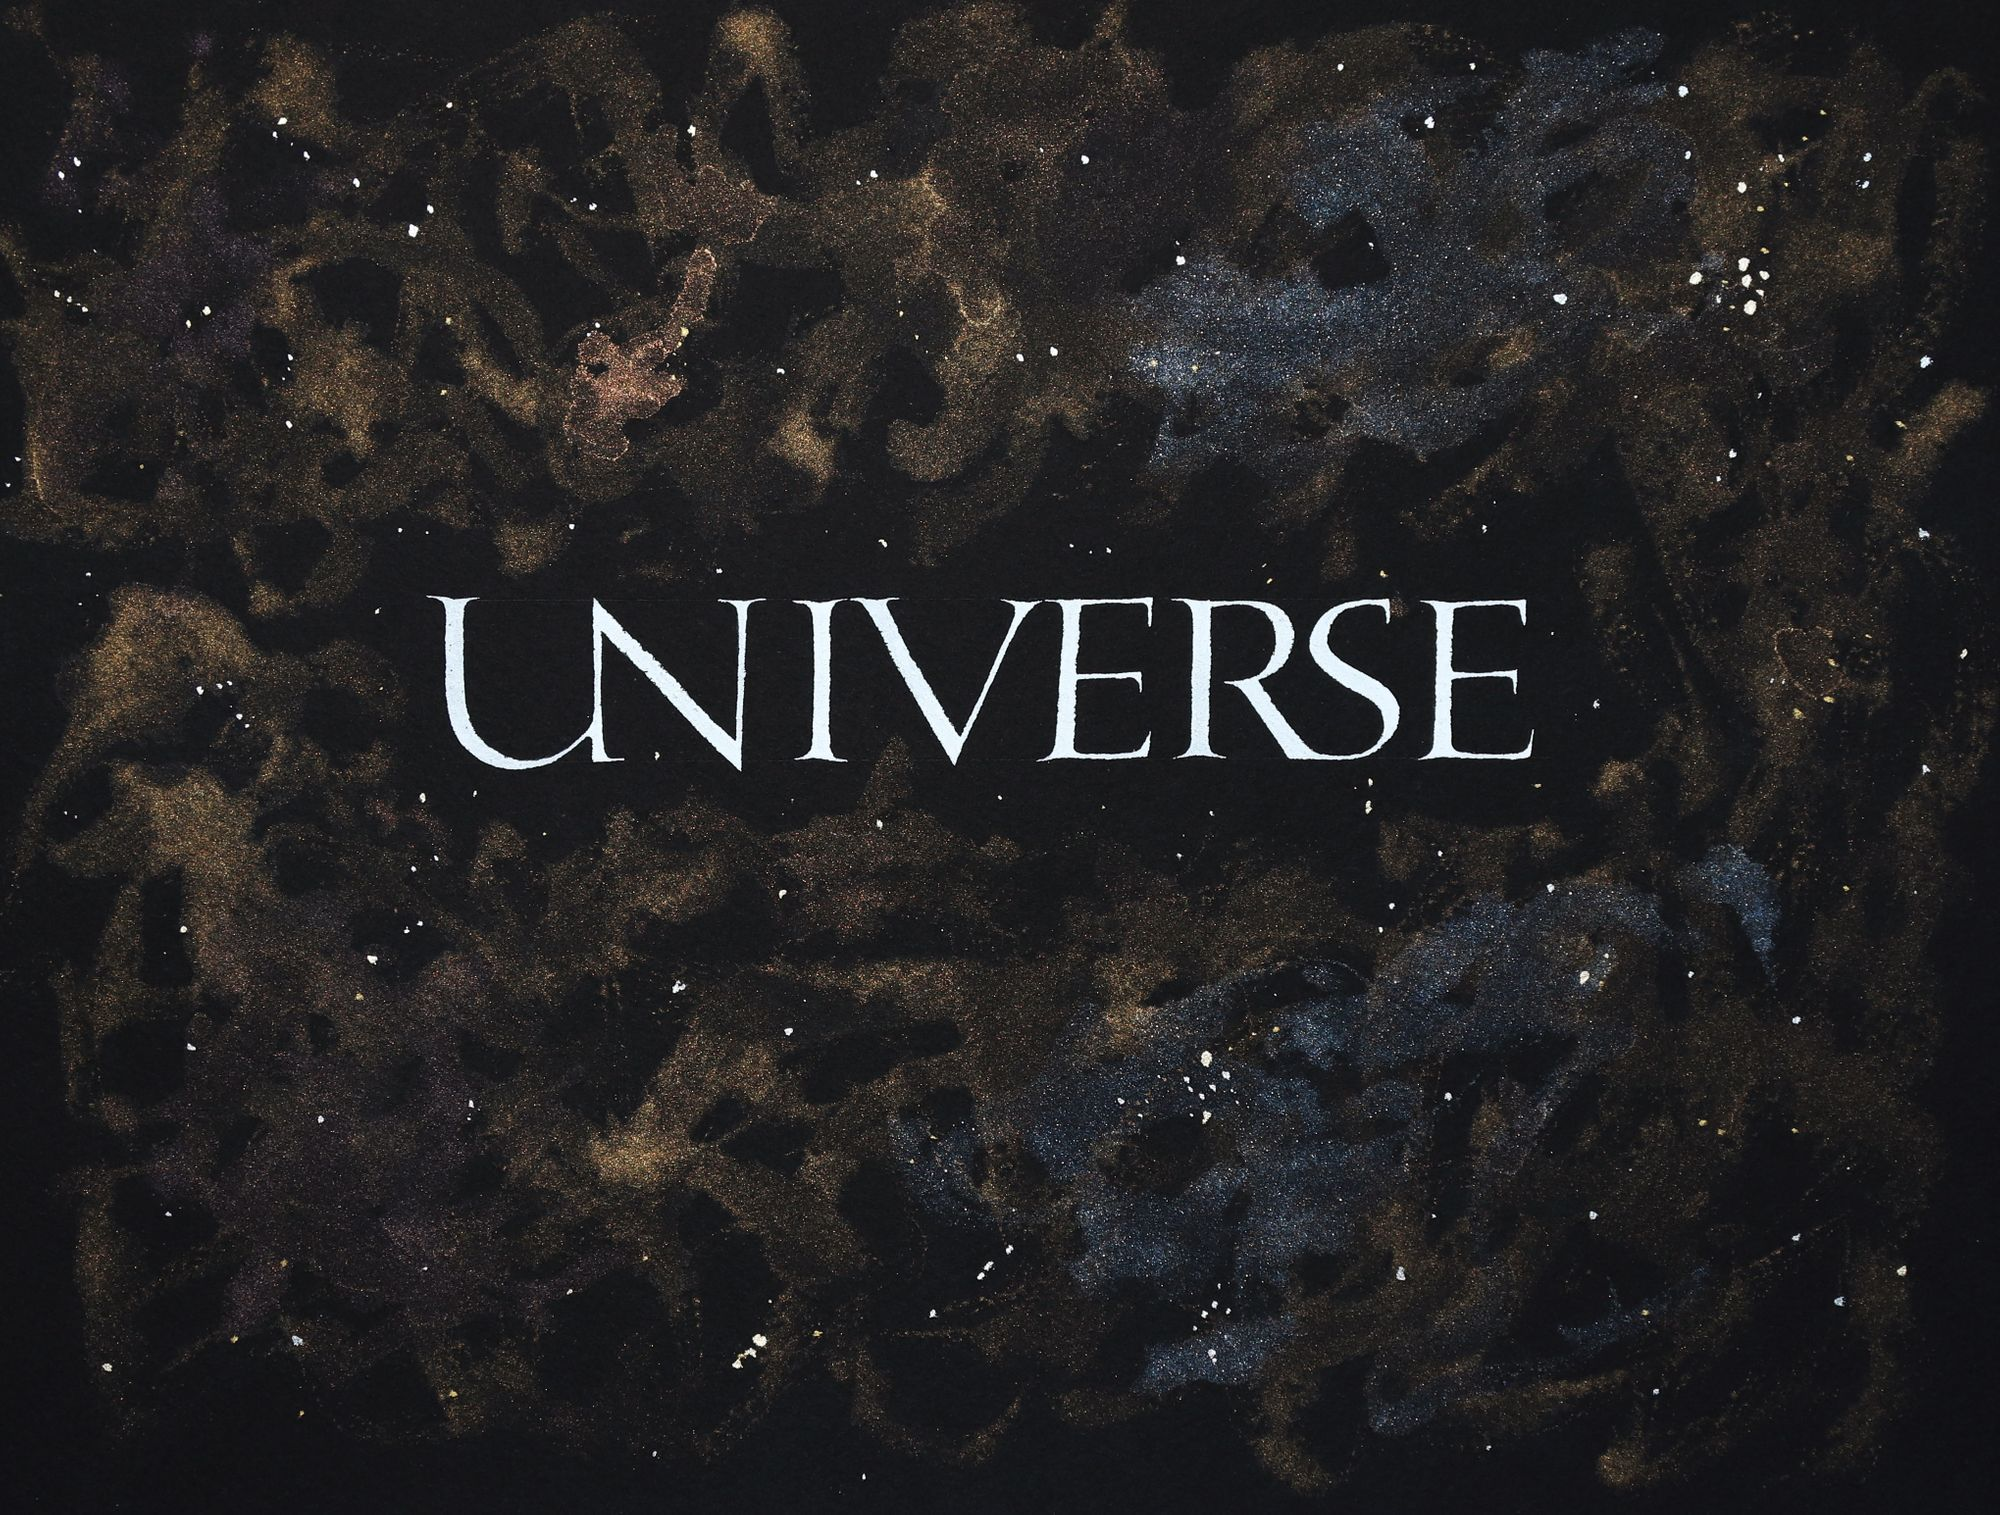 universe_cropped-1